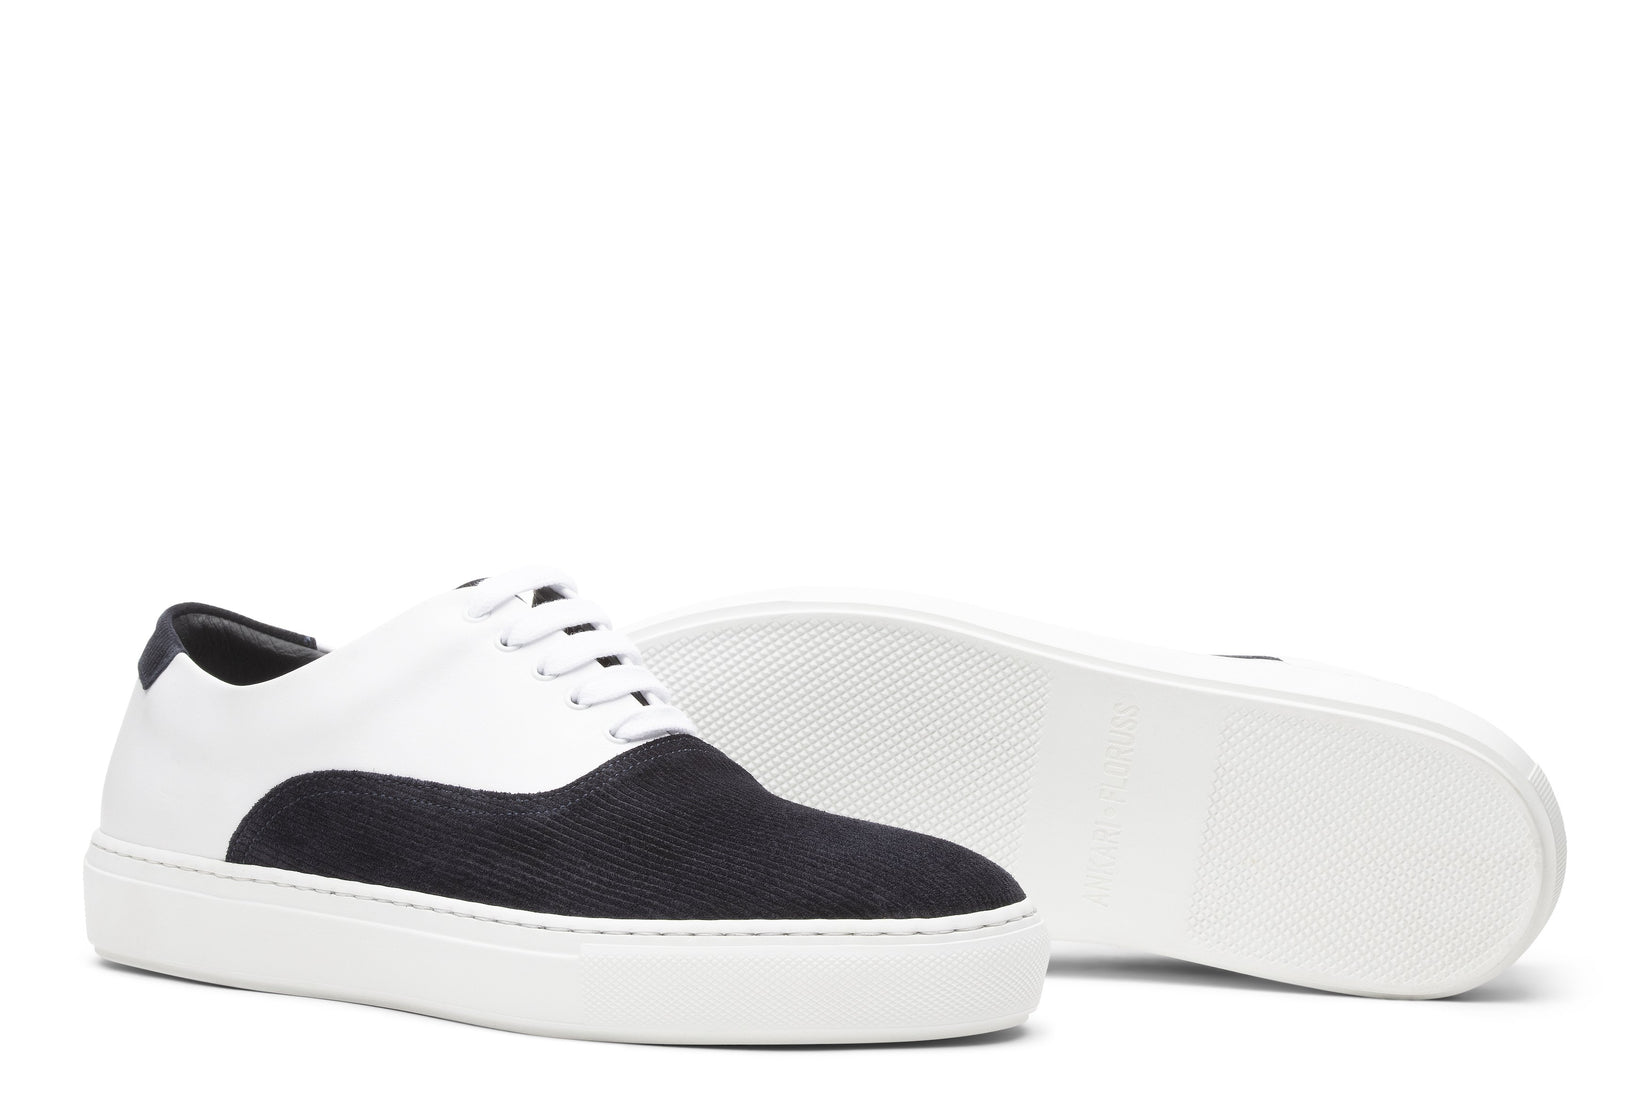 Sunday Two-Tone Skater Sneaker in White/Indigo